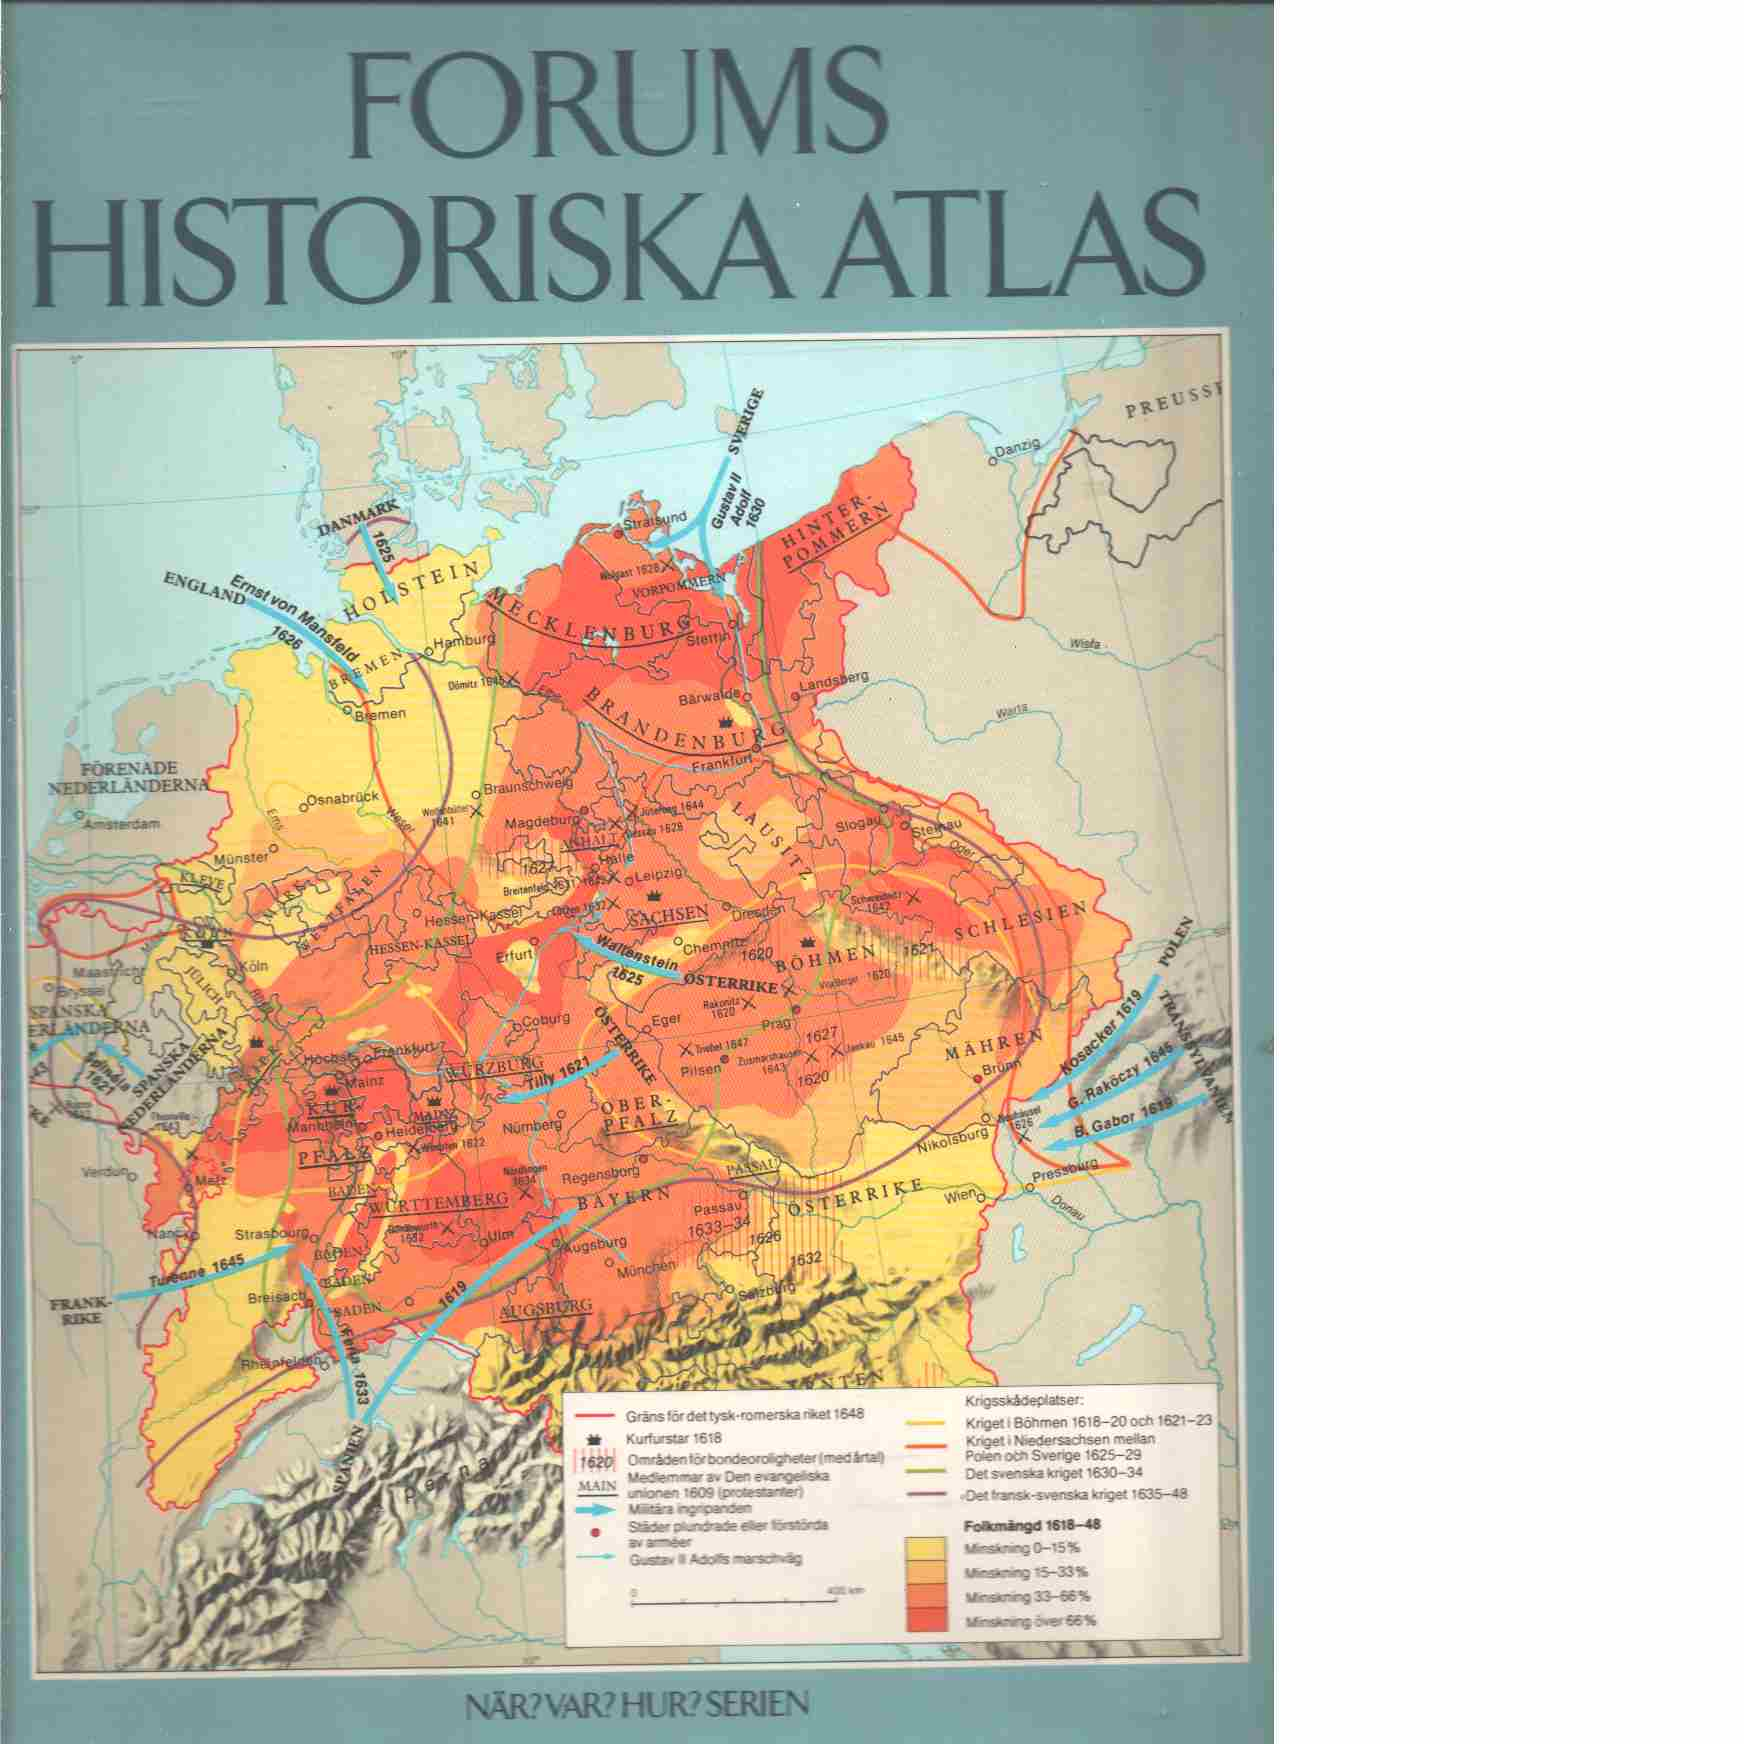 Forums historiska atlas - Red. Moore, R. I.